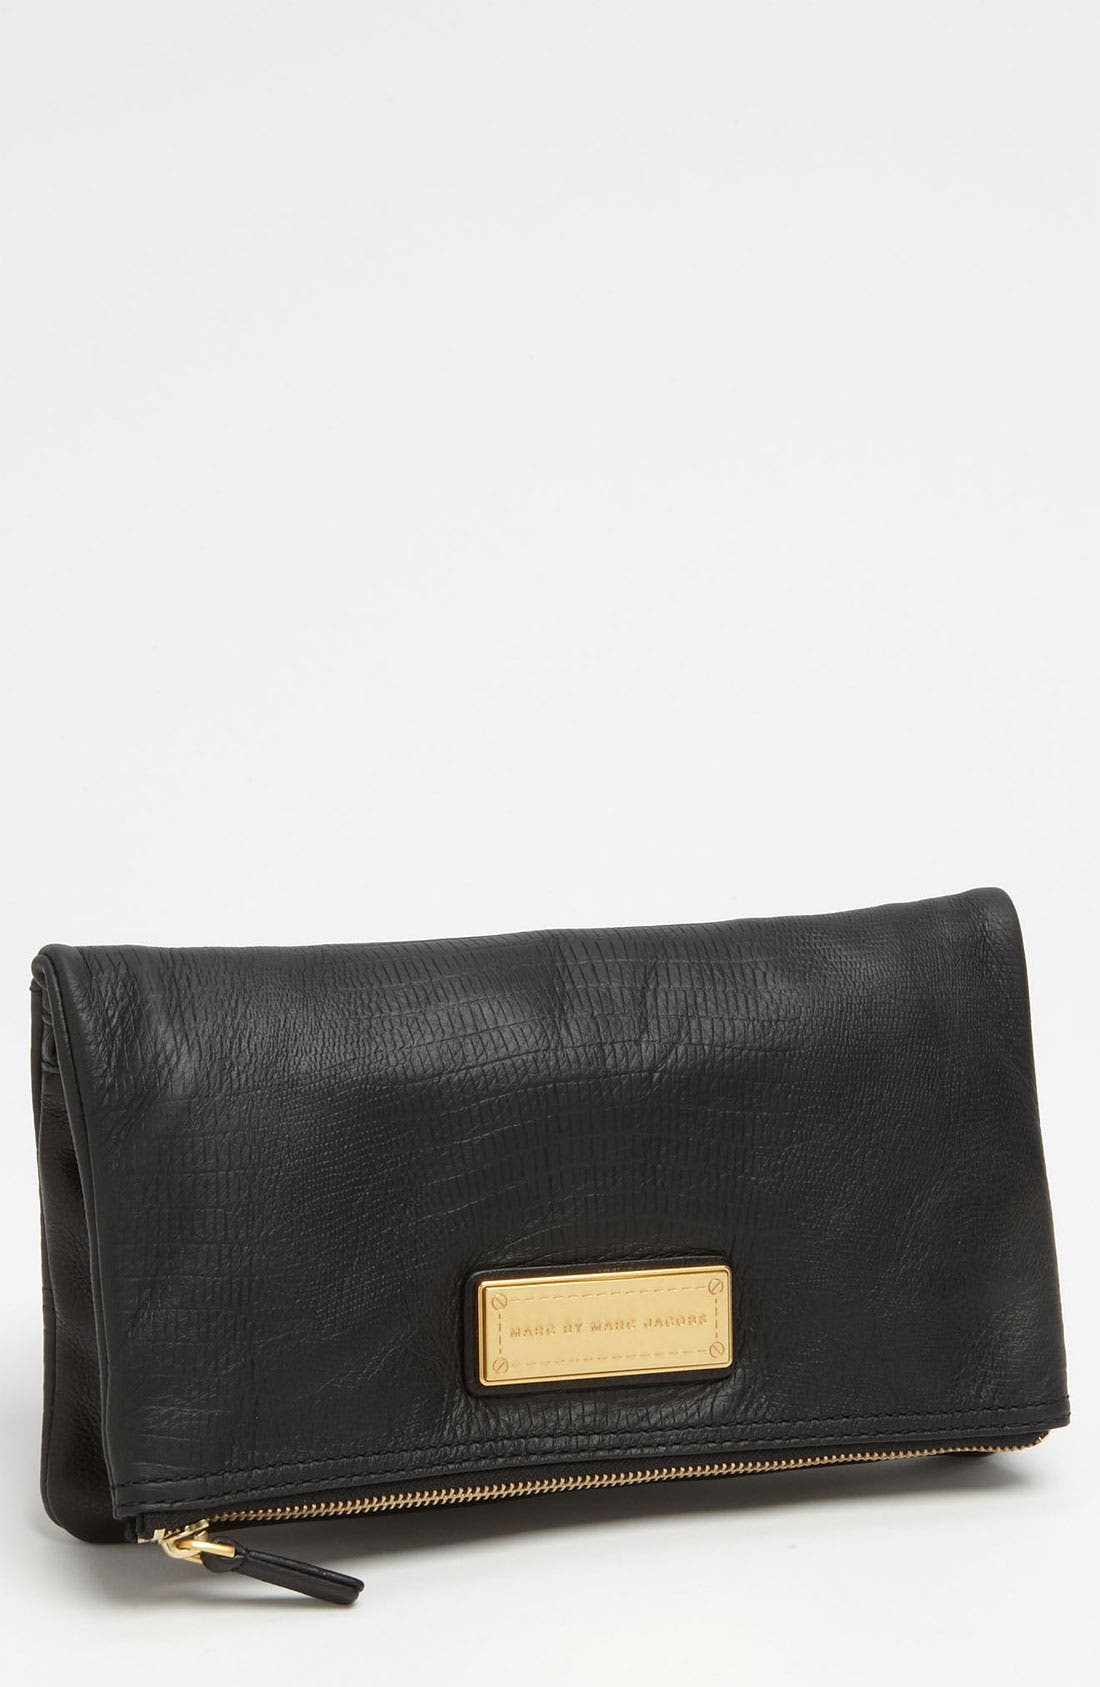 Alternate Image 1 Selected - MARC BY MARC JACOBS 'Too Hot to Party' Clutch